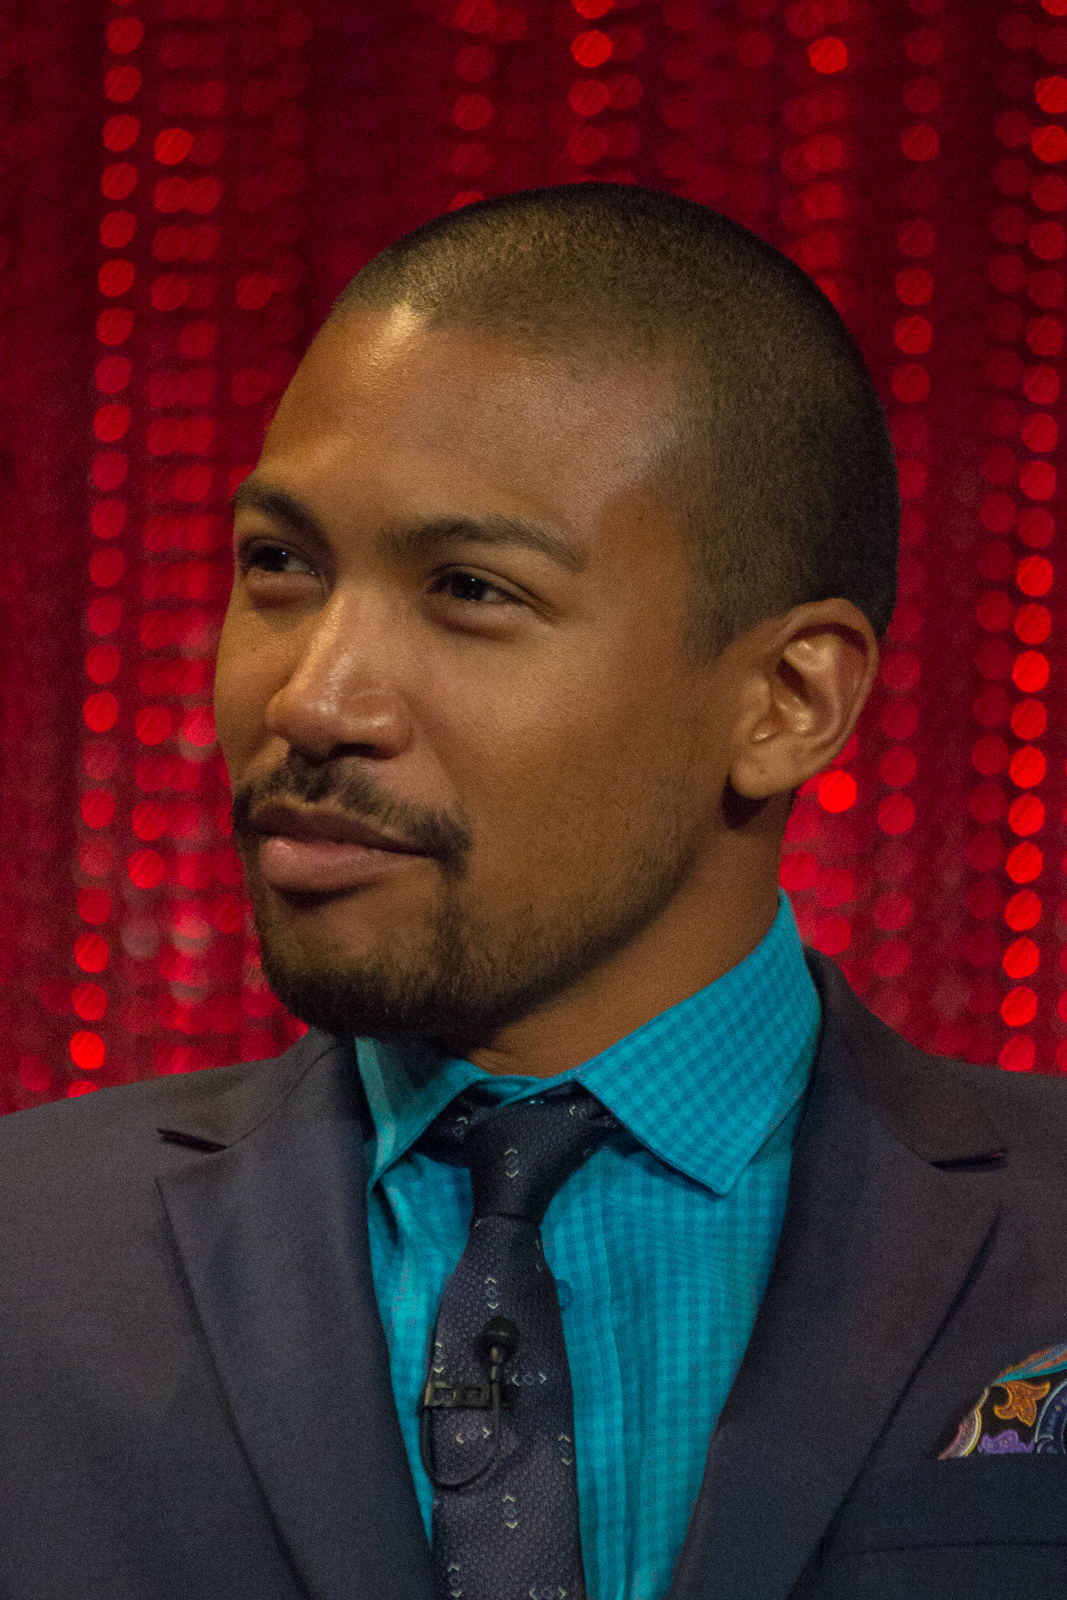 The 33-year old son of father (?) and mother(?) Charles Michael Davis in 2018 photo. Charles Michael Davis earned a  million dollar salary - leaving the net worth at 3 million in 2018